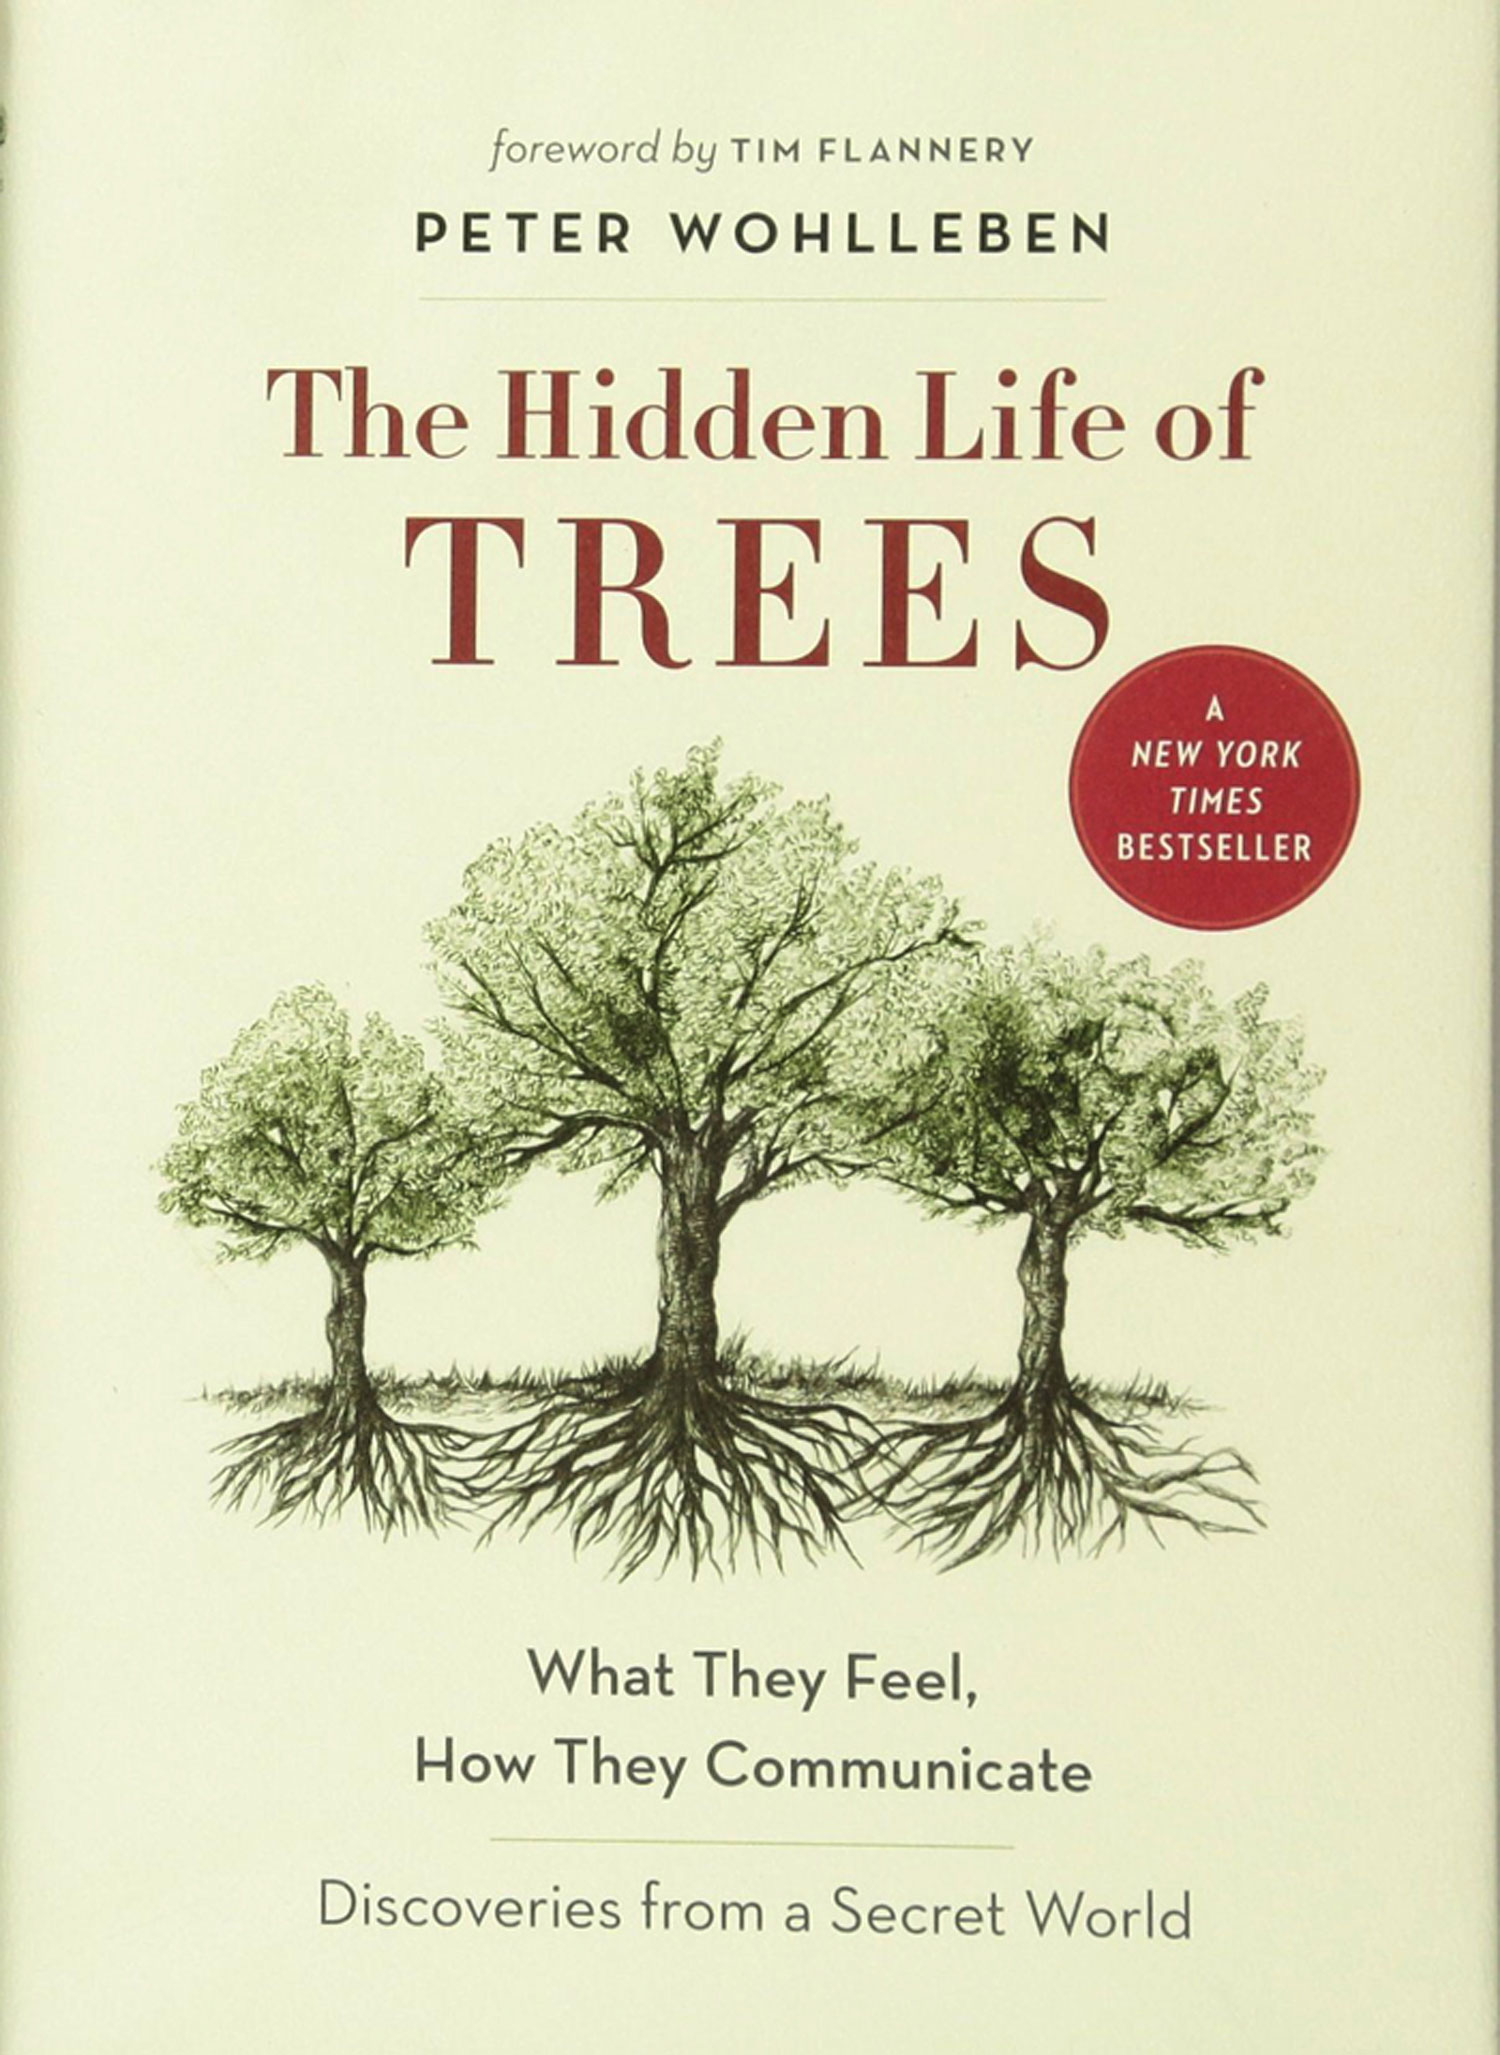 """Rough Text 7: The Hidden Life Of Trees - [Originally published as the seventh installment in my monthly book review column, """"Rough Text,"""" in Penthouse magazine.]The Hidden Life Of Trees, By Peter Wohlleben, (Greystone Books)""""It seems the trees can count!"""" writes Peter Wohlleben in this astounding, yet utterly boring book about trees. (I'm not sure how something can be astounding and boring at the same time, but Wohlleben has a peculiar talent for it. Which is fascinating in itself.)But, wait. Trees can count? Well how high can they count?They can count to tree. One, two, tree.Sorry. I was very proud of that joke when I committed it to paper late one night, but seeing it now in the light of day…Counting is a very interesting process. The first time I really thought about it was while reading Molloy, Malone Dies, And The Unnamable by Samuel Beckett. Early in the book, Molloy discusses the process he developed for communicating with a woman, who may or may not be his mother, by knocking on her skull. One knock meant yes, two no, three I don't know, four money, five goodbye.""""That she should confuse yes, no, I don't know, and goodbye, was all the same to me,"""" he wrote, """"I confused them myself. But that she should associate the four knocks with anything but money was something to be avoided at all costs.""""So he would stick a bank note under her nose or in her mouth when he would administer the four knocks. Unfortunately he didn't consider how deteriorated her memory was when he chose four knocks as the symbol for money.""""In the innocence of my heart!"""" Molloy exclaimed. """"For she seemed to have lost, if not absolutely all notion of mensuration, at least the faculty of counting beyond two. It was too far for her, yes, the distance was too great from one to four. By the time she came to the fourth knock she imagined she was only at the second, the first two having been erased from her memory as completely as if they had never been felt, though I don't quite see how something ne"""